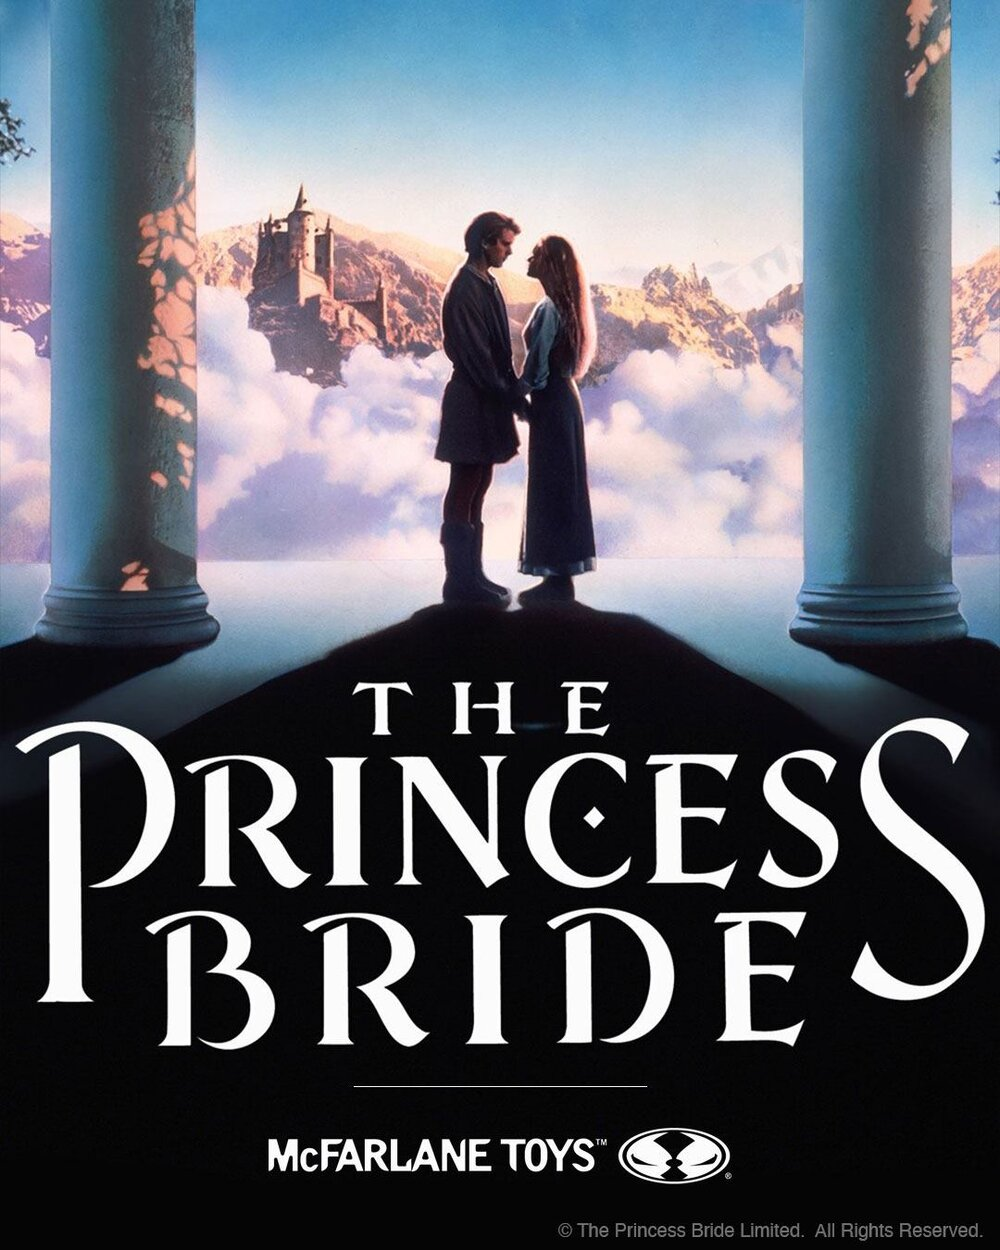 mcfarlane-toys-announces-a-line-of-action-figure-based-on-the-princess-bride4